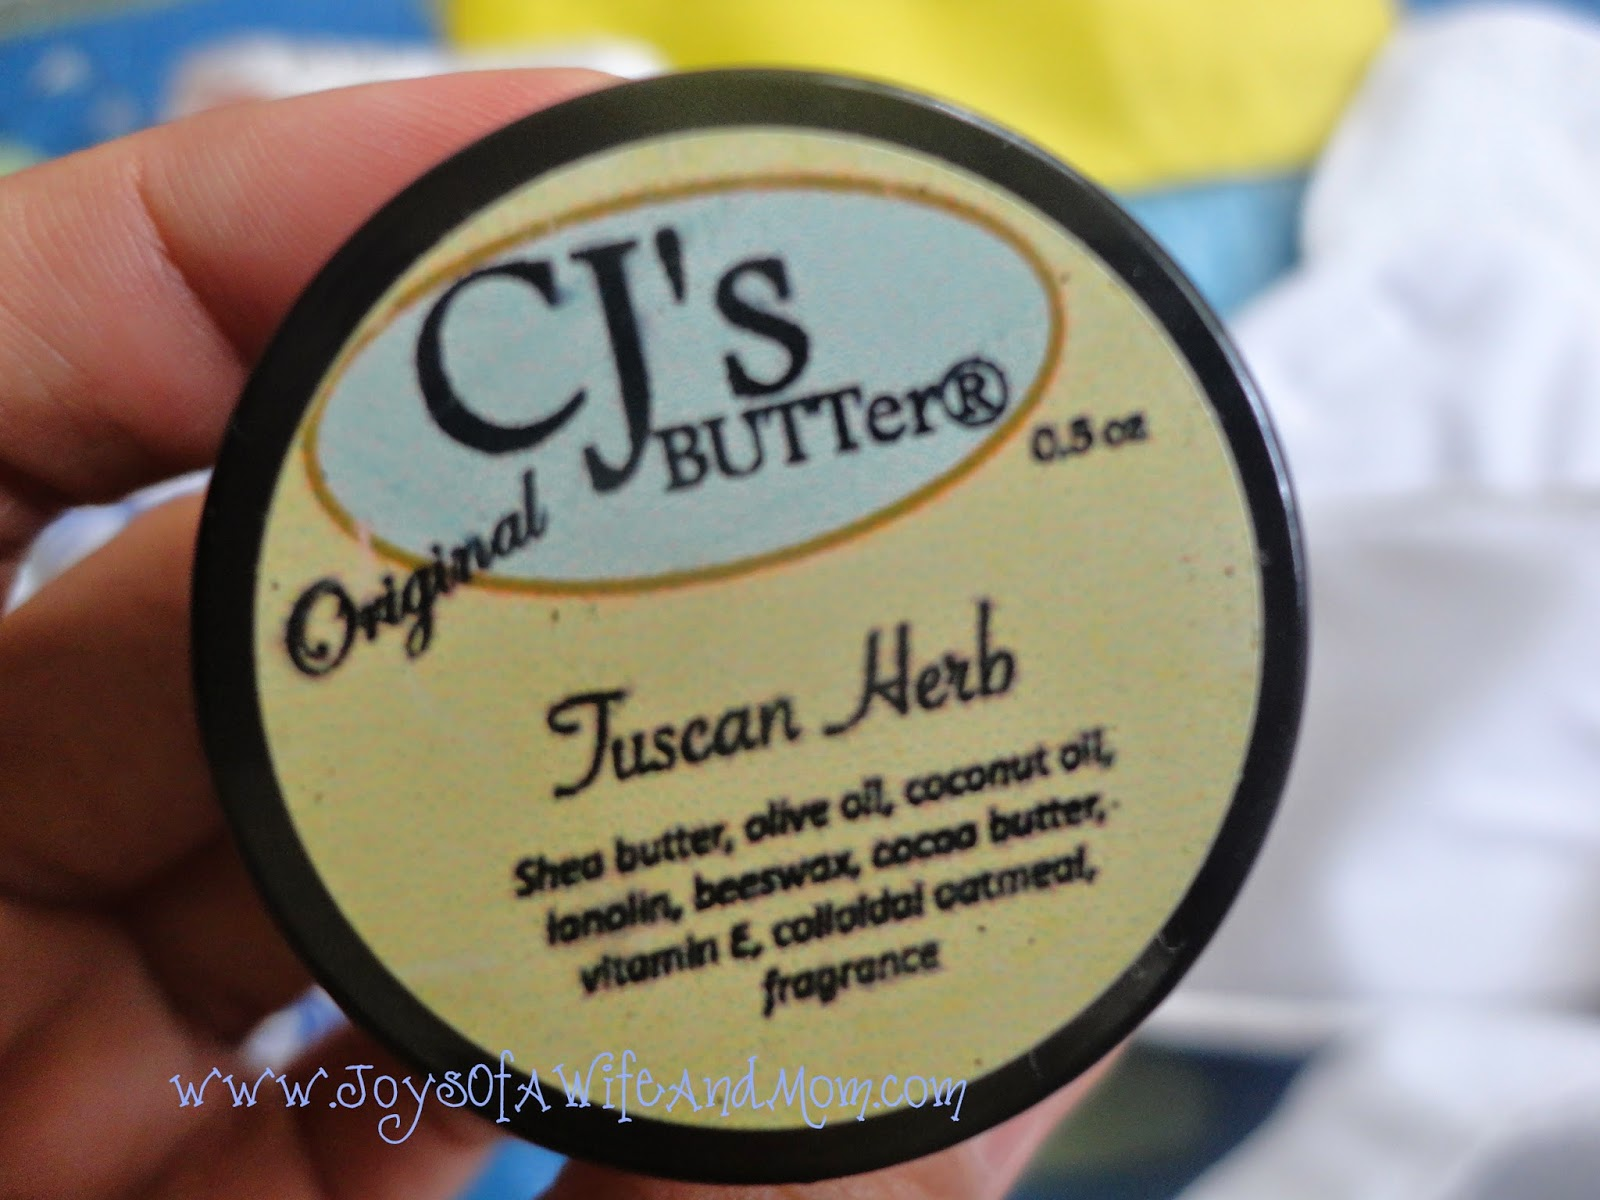 Product Review: CJ's BUTTer